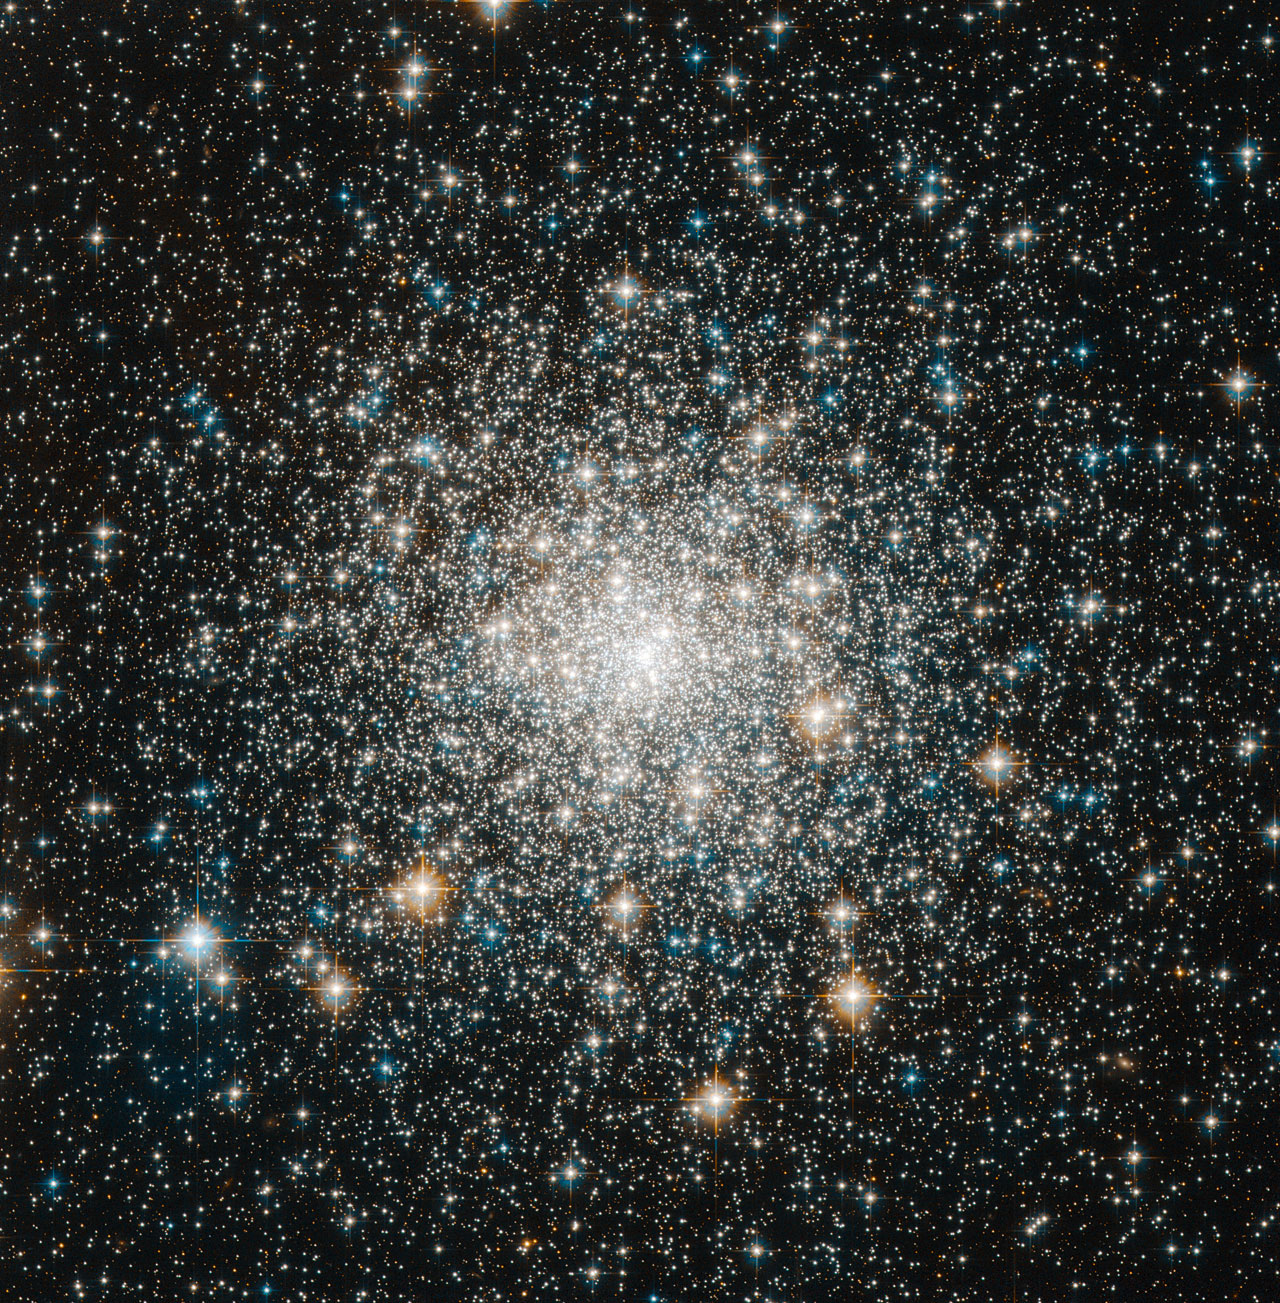 http://www.nasa.gov/images/content/638268main_messier70-full.jpg